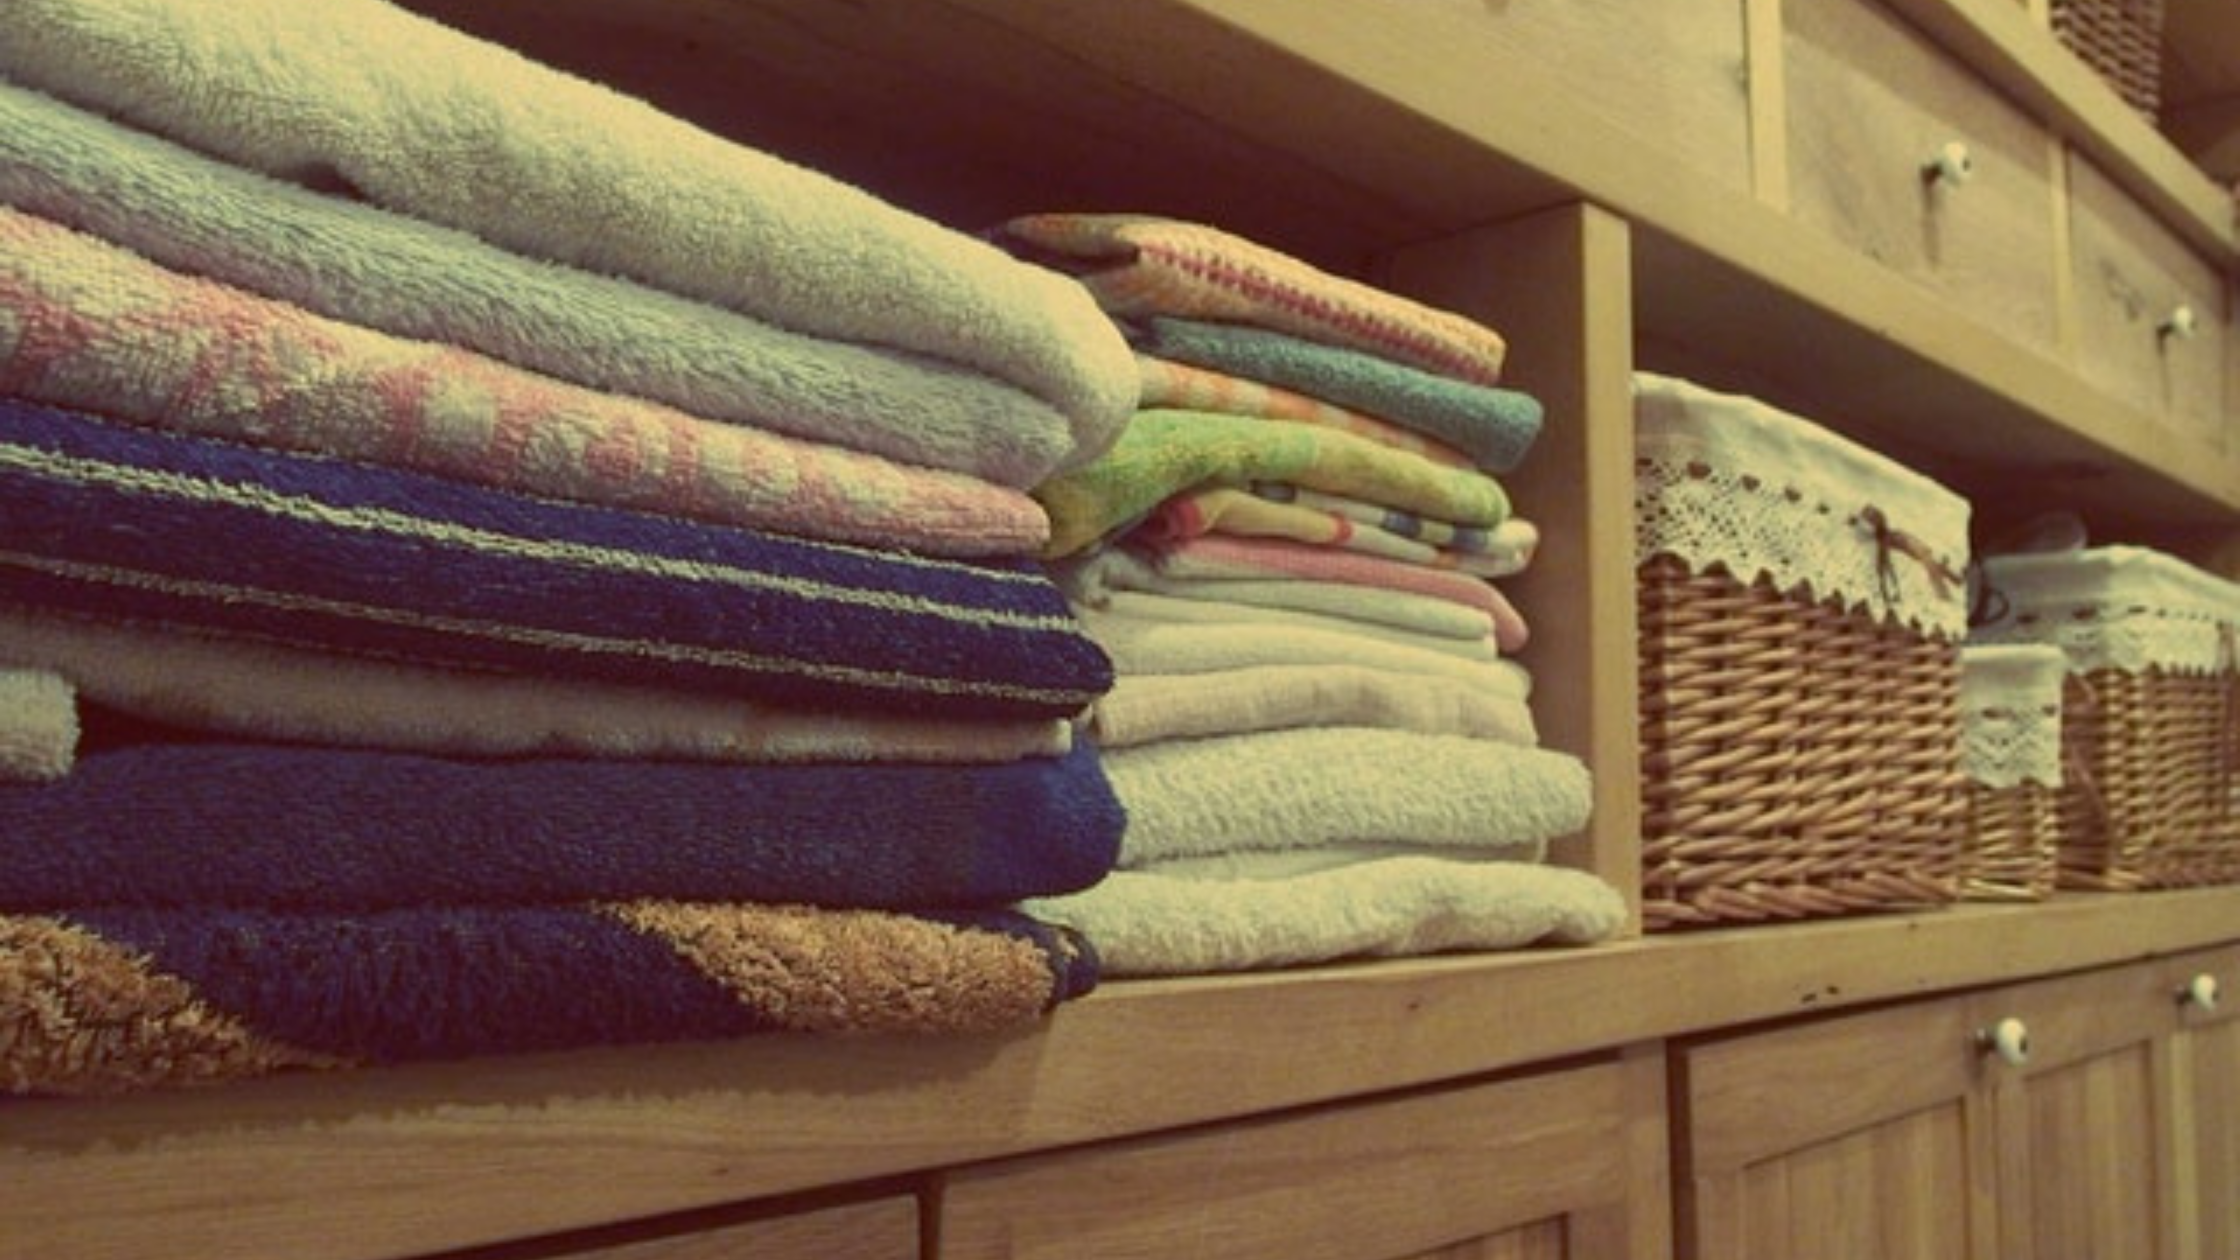 Organized towels with sliding basket drawers.